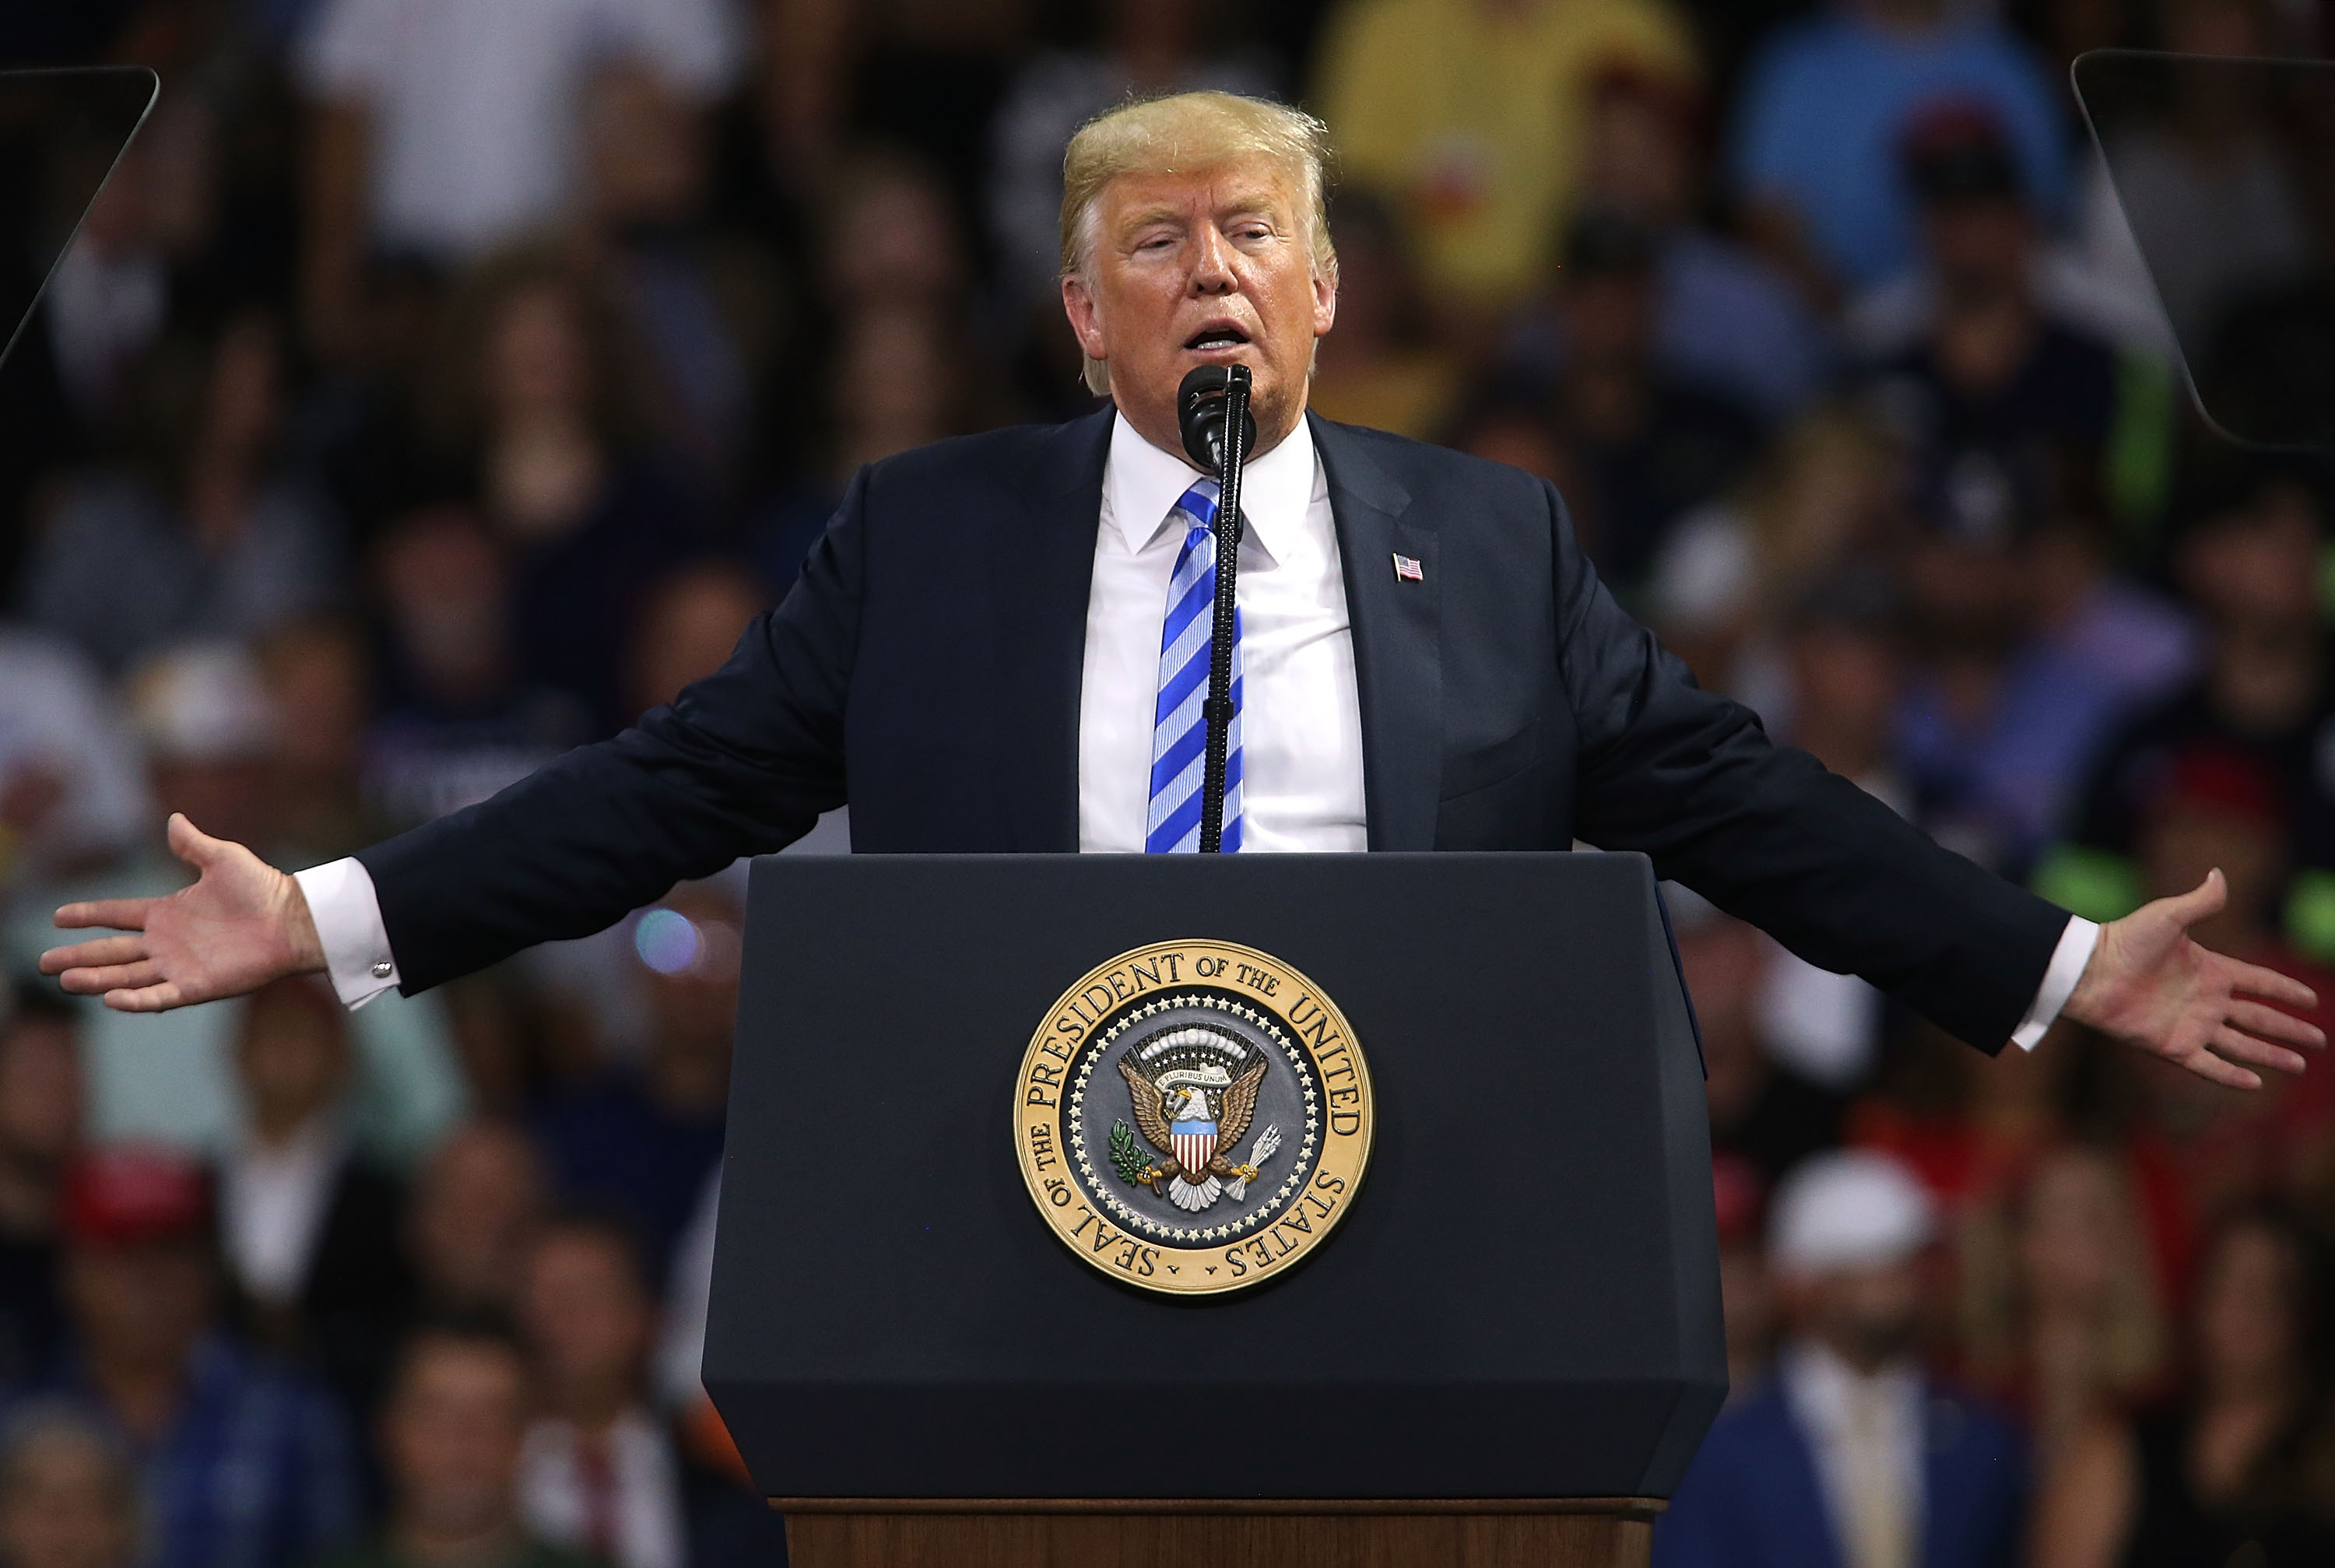 CHARLESTON, WV - AUGUST 21: President Donald Trump speaks at a rally on August 21, 2018 in Charleston, West Virginia. Paul Manafort, a former campaign manager for Trump and a longtime political operative, was found guilty in a Washington court today of not paying taxes on more than $16 million in income and lying to banks where he was seeking loans. (Photo by Spencer Platt/Getty Images)